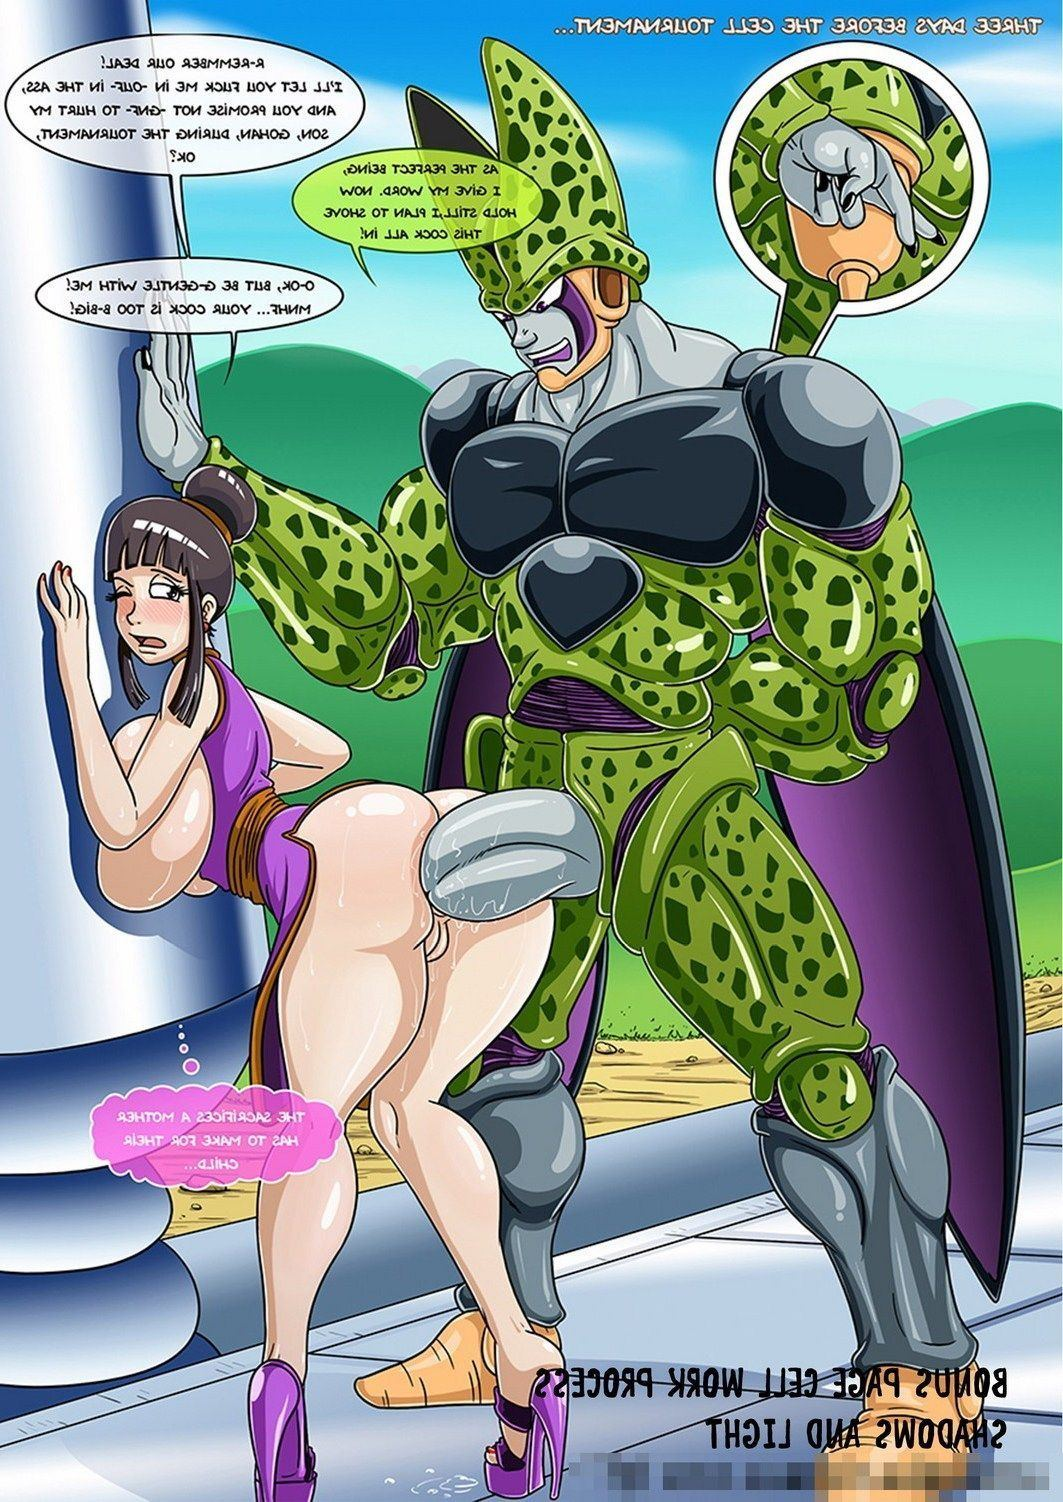 You comic porno gt sexo dragon ball tempting